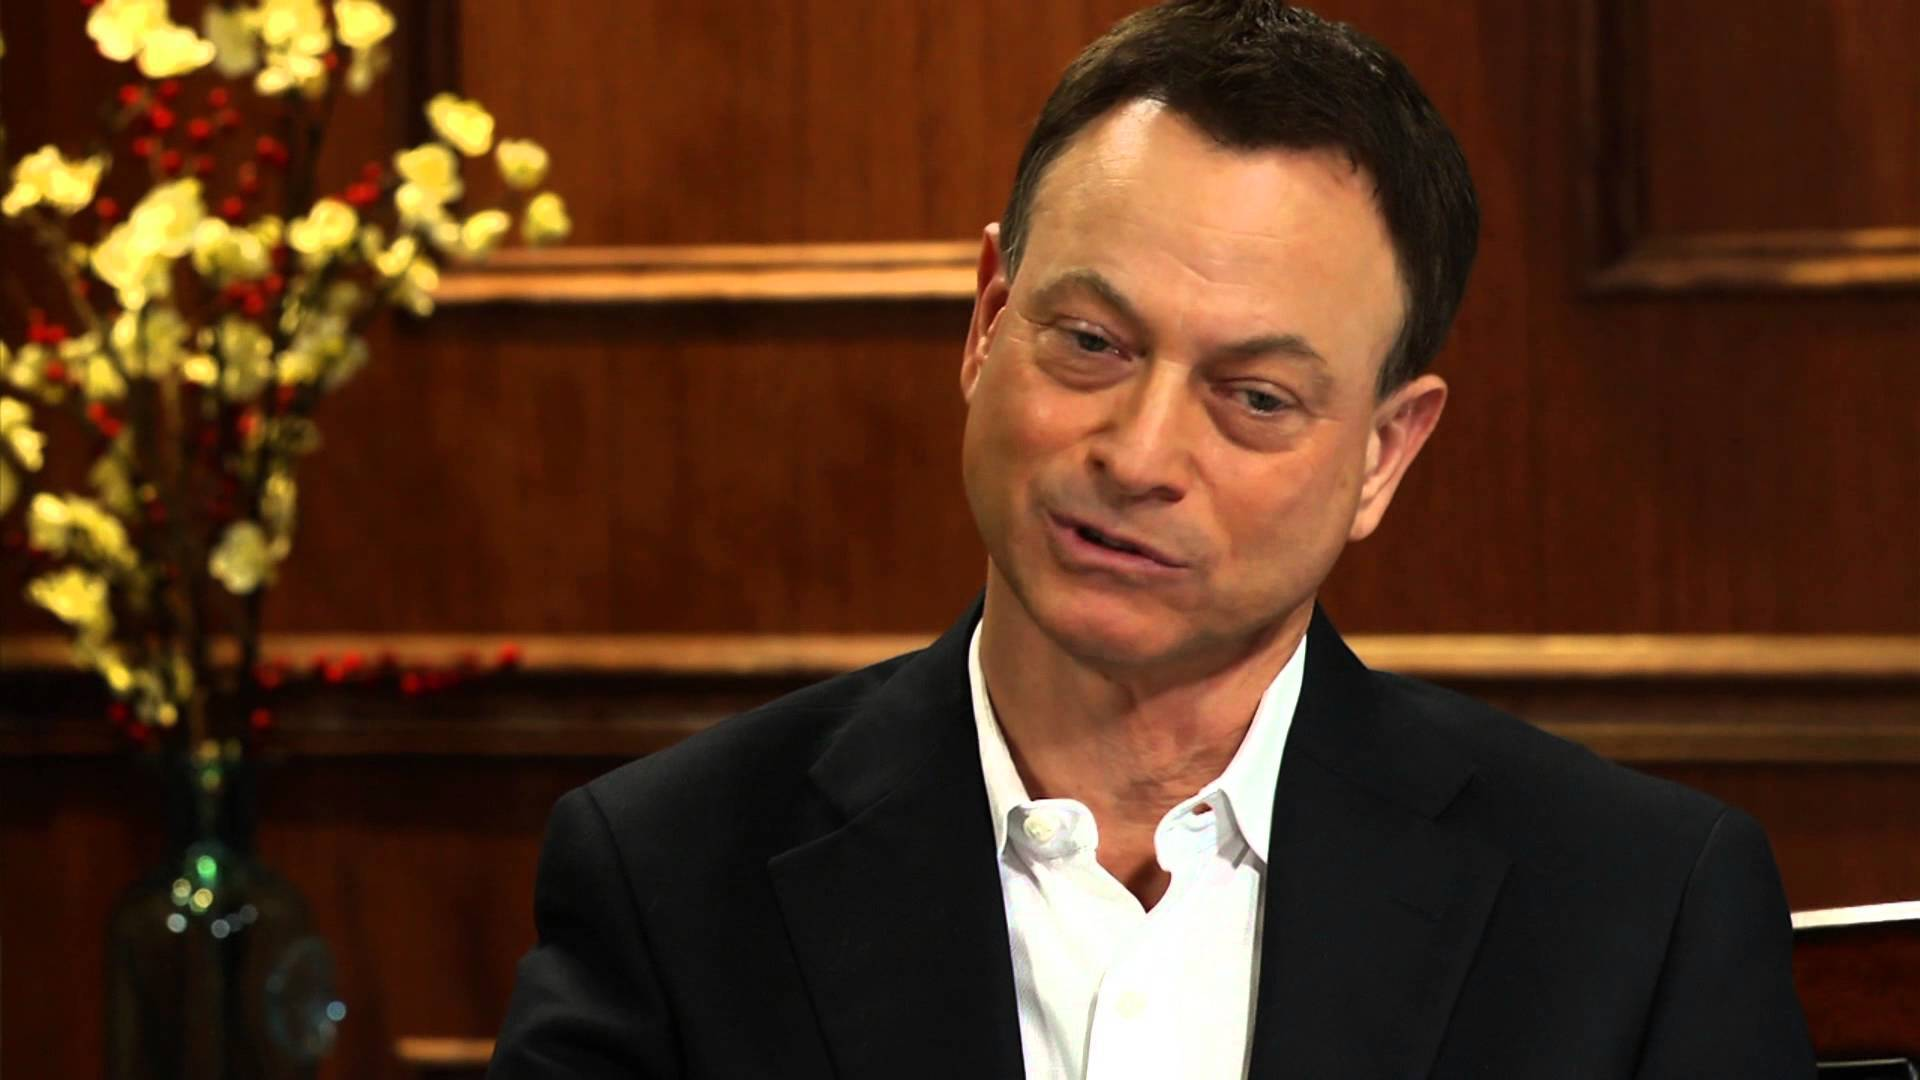 Gary Sinise Wallpapers Images Photos Pictures Backgrounds